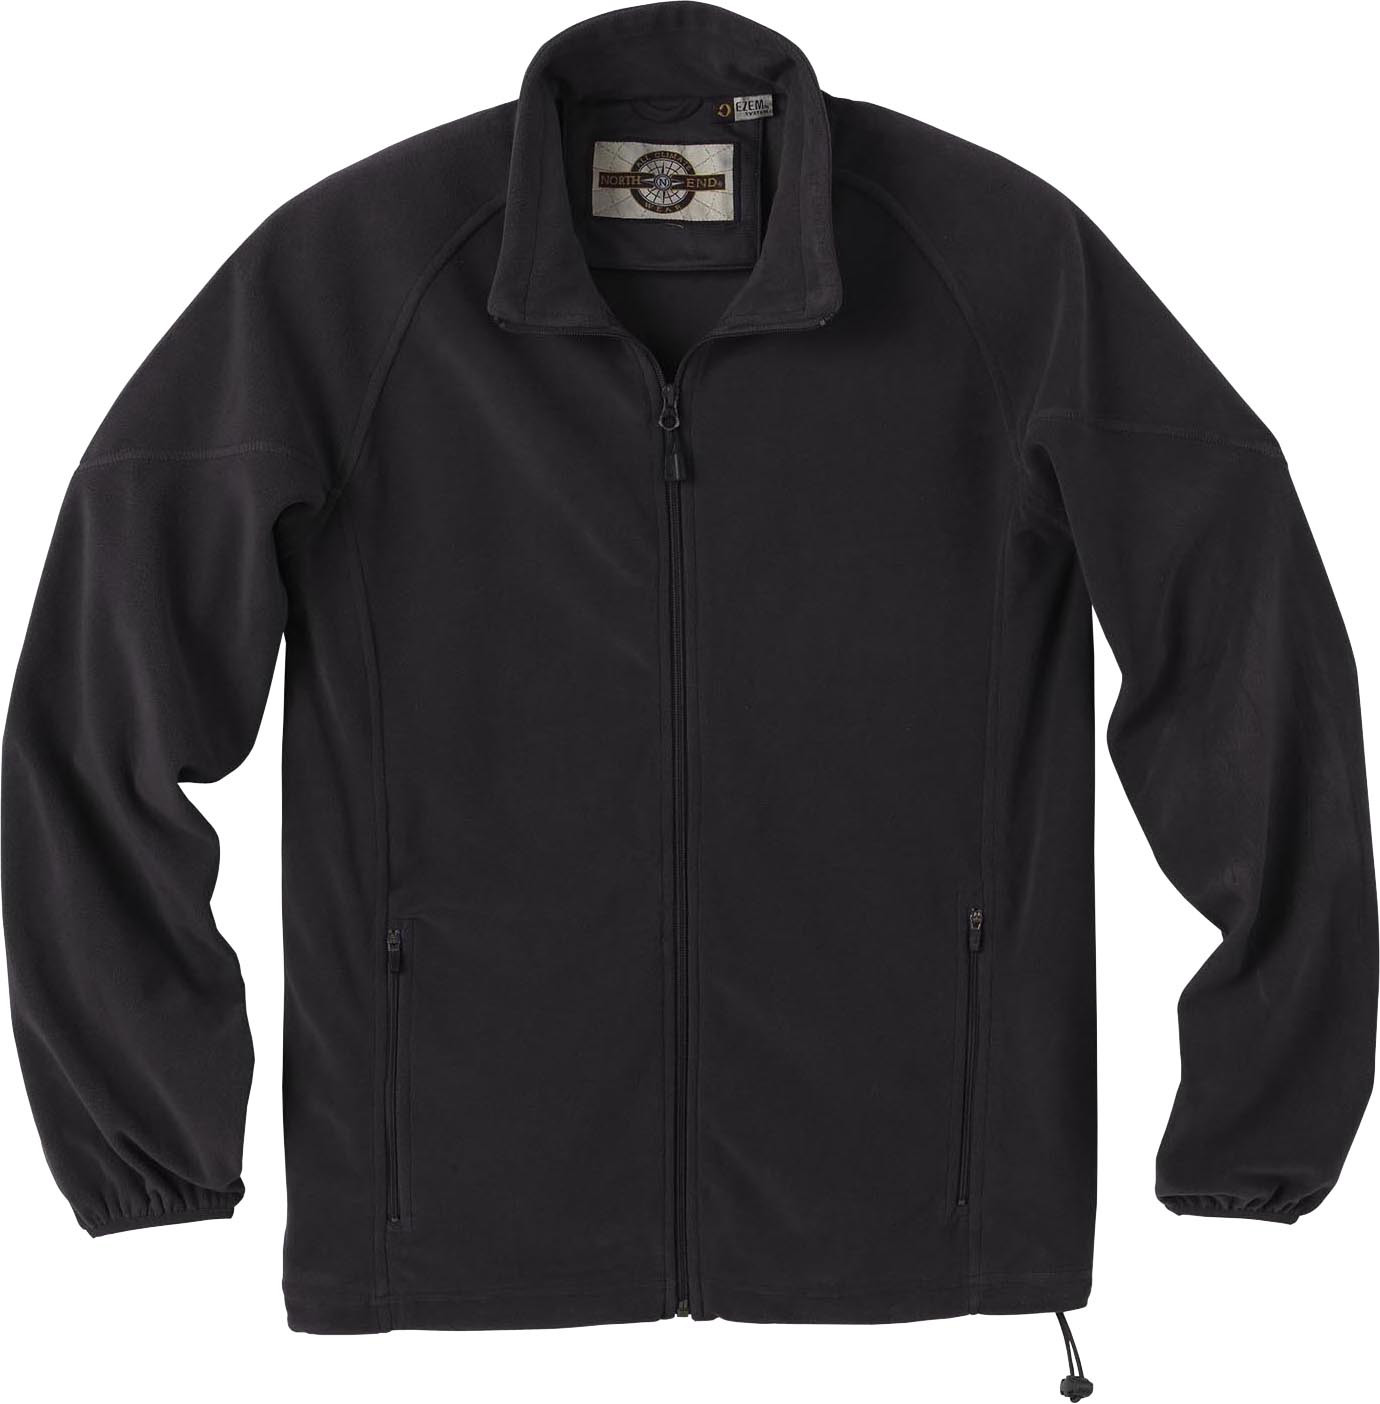 Ash City Microfleece 88095 - Men's Microfleece Unlined ...